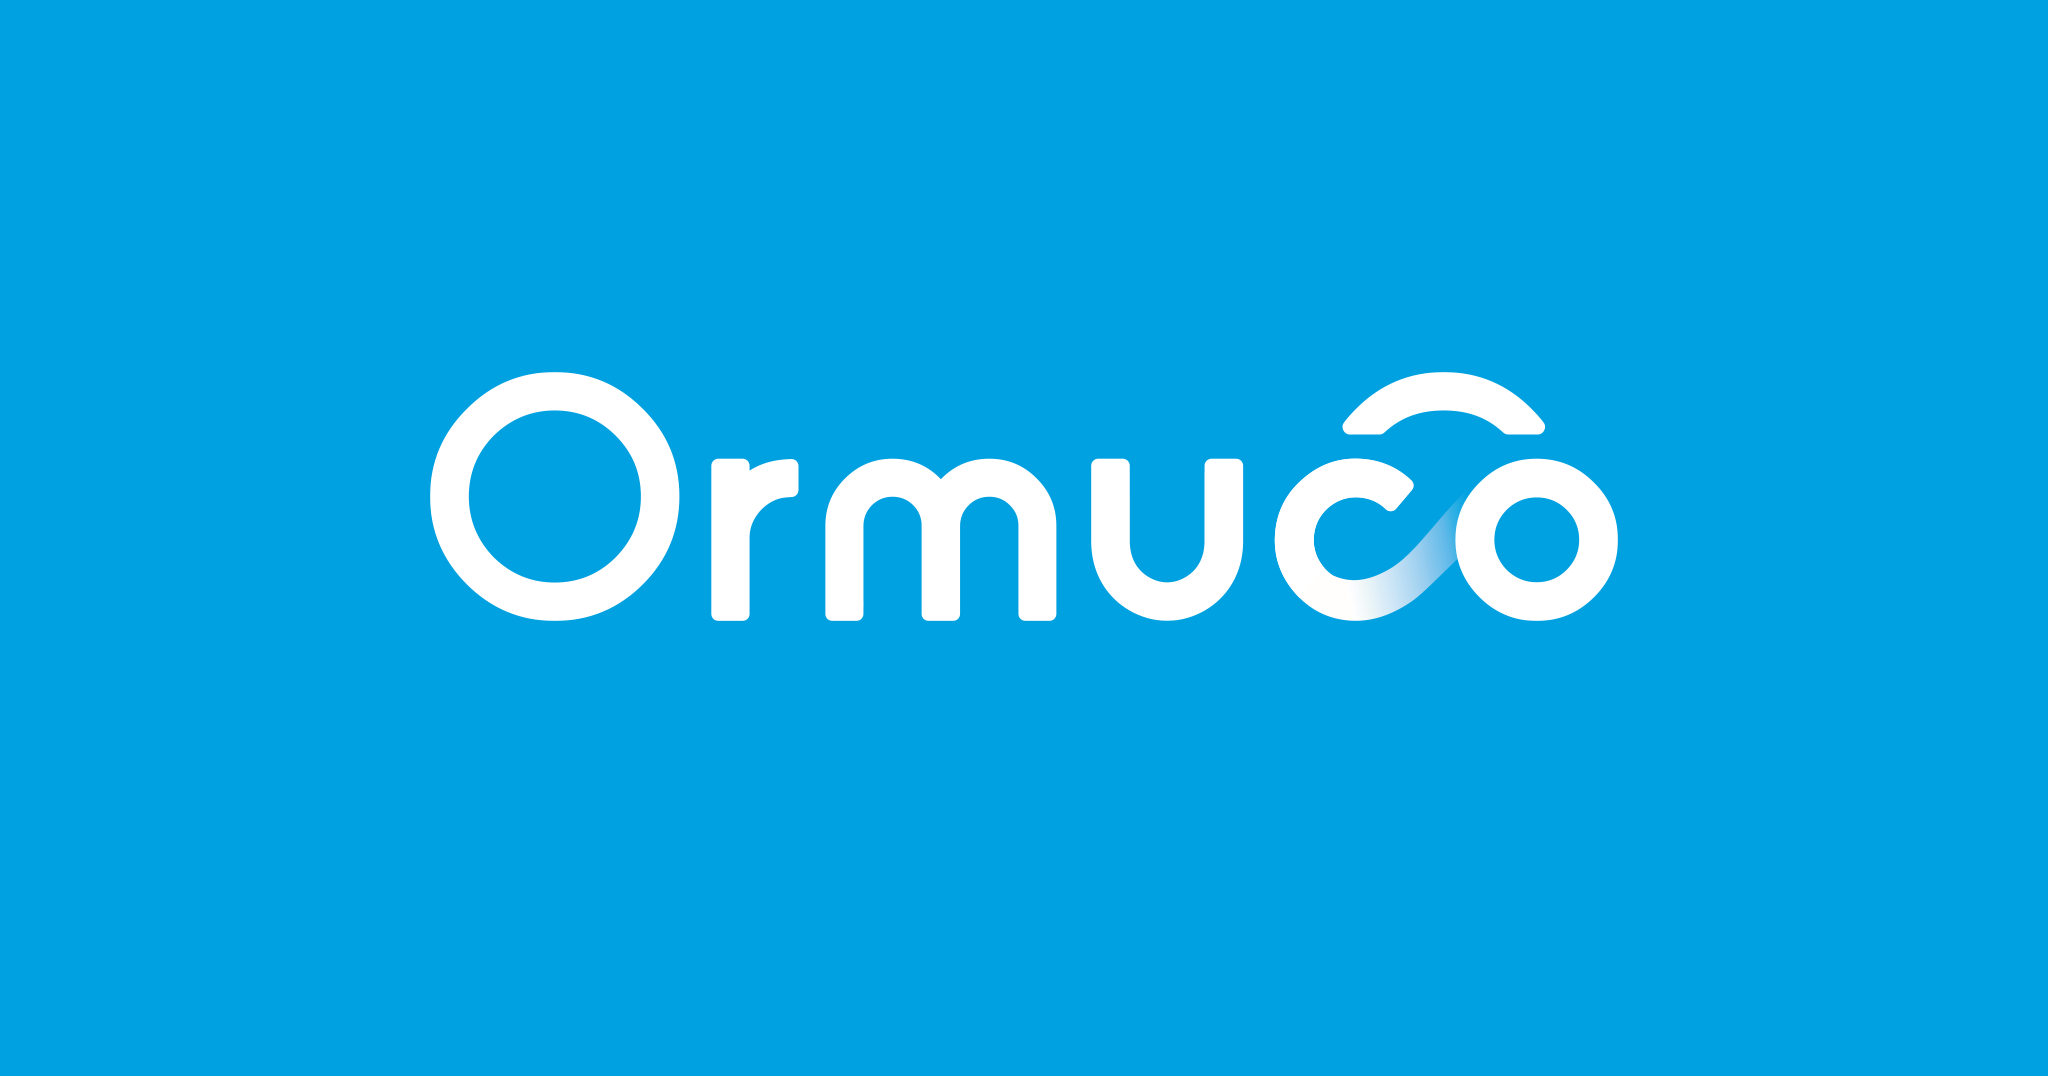 Global Cloud Solution Provider, Ormuco, today announces it has selected MigSolv as its UK data centre partner